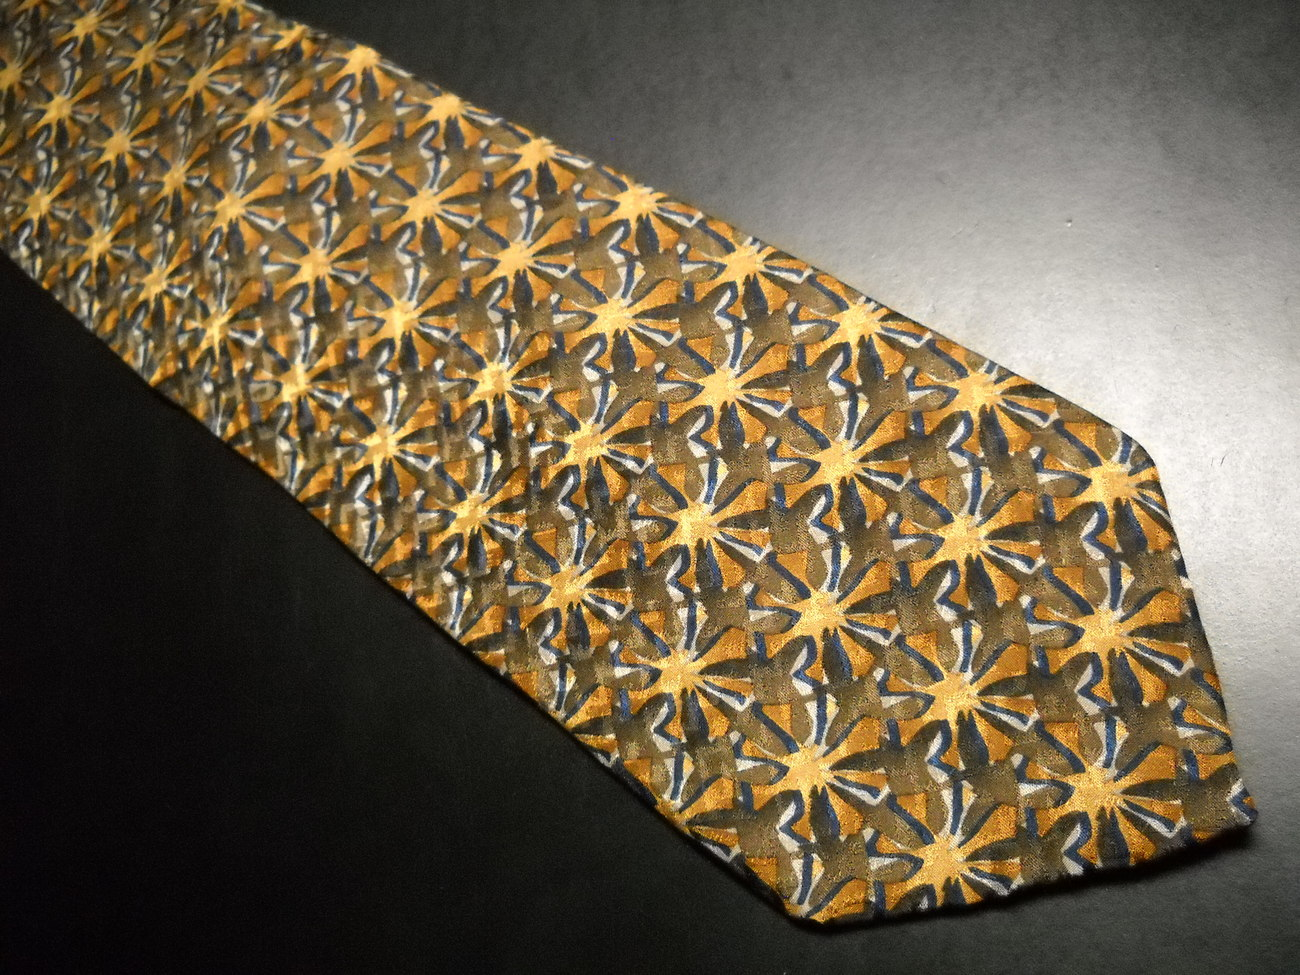 Tie artisphere charles vinson starbursts in brown with white blue accents 01